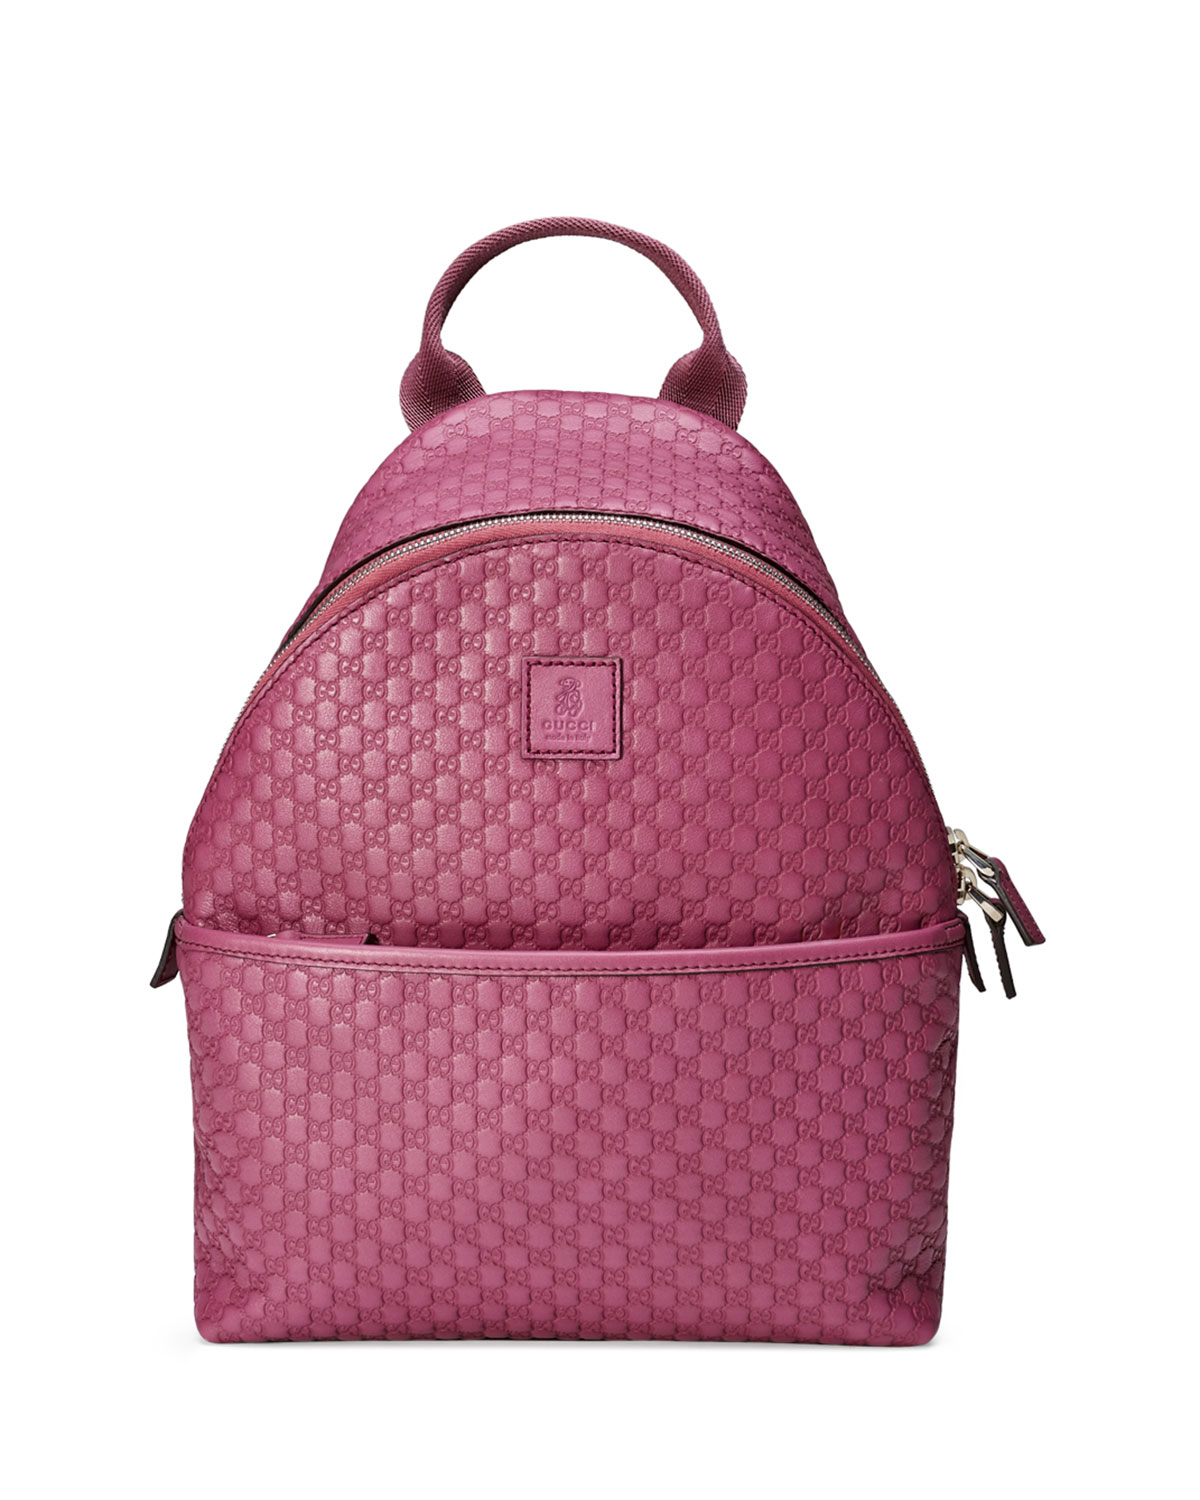 Gucci Girls Microssima Leather Zip Top Backpack In Pink